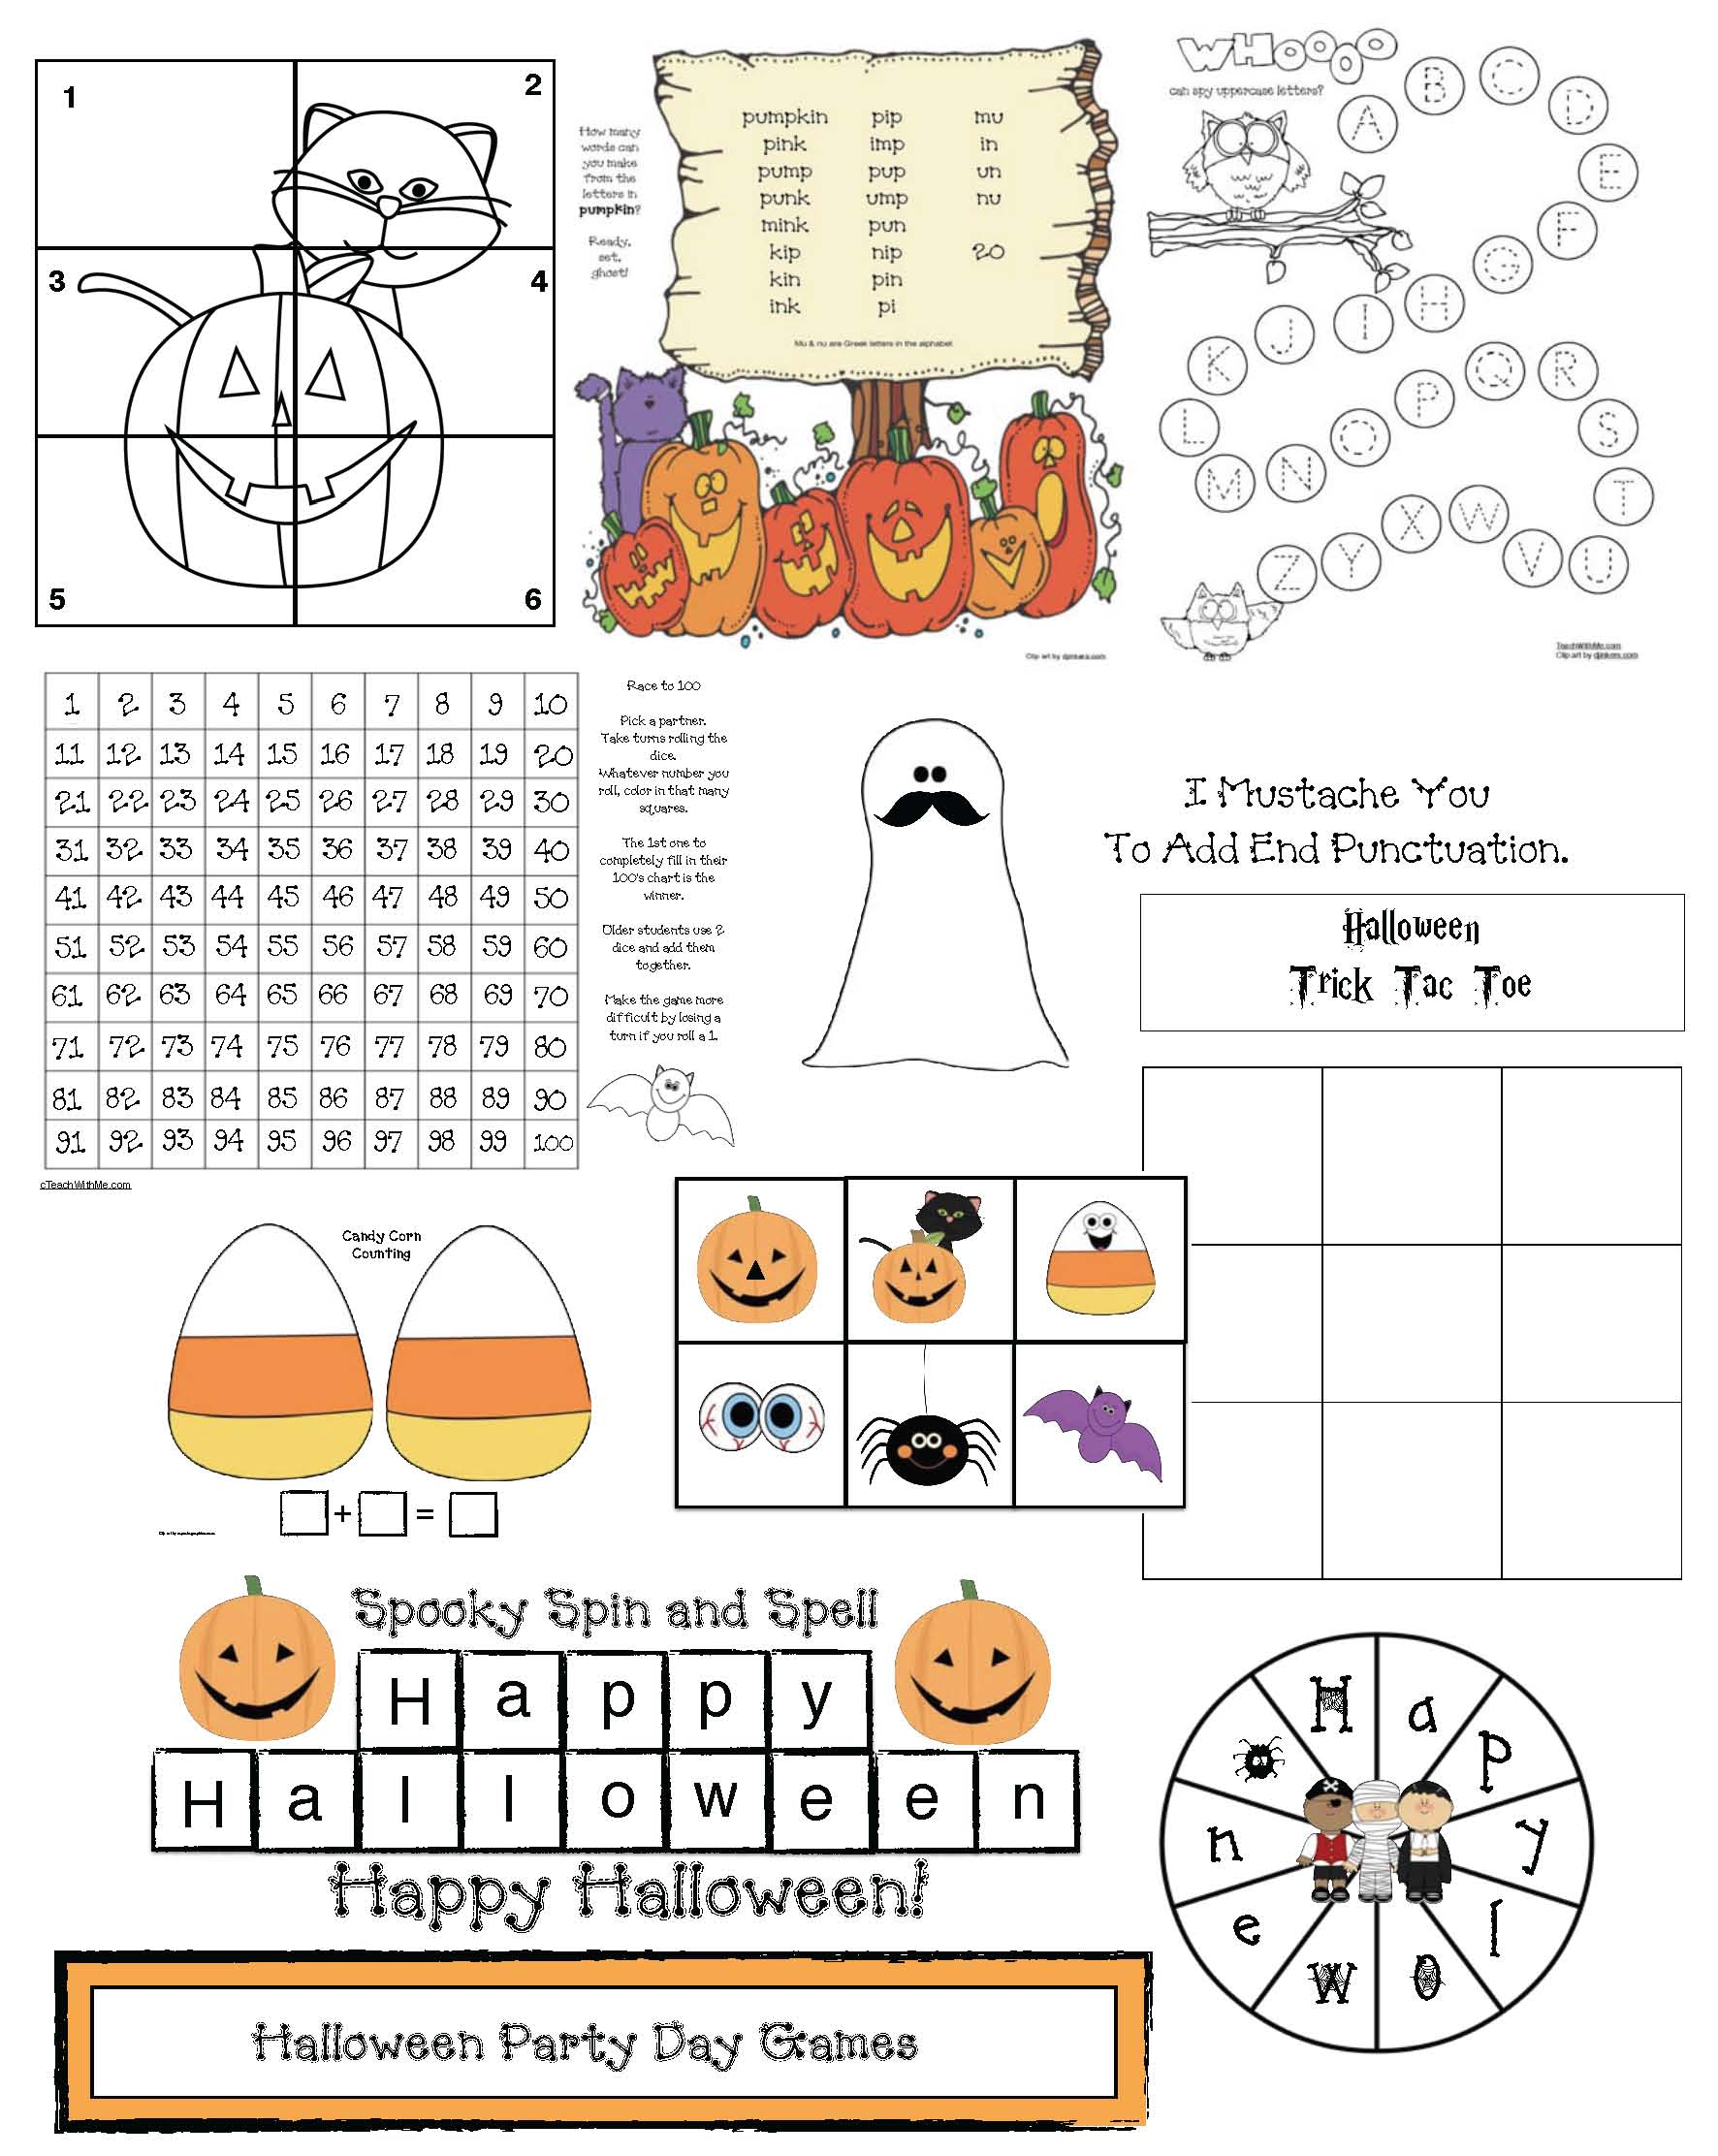 Halloween games, halloween activities, halloween coloring pages, halloween puzzles, halloween word games, halloween dice games, 100 chart games, 100 chart activities, hidden pictures in a 100 grid, pumpkin activities, pumpkin games, end punctuation activities, capitalization activities, spelling games, spelling activities, halloween writing prompts,